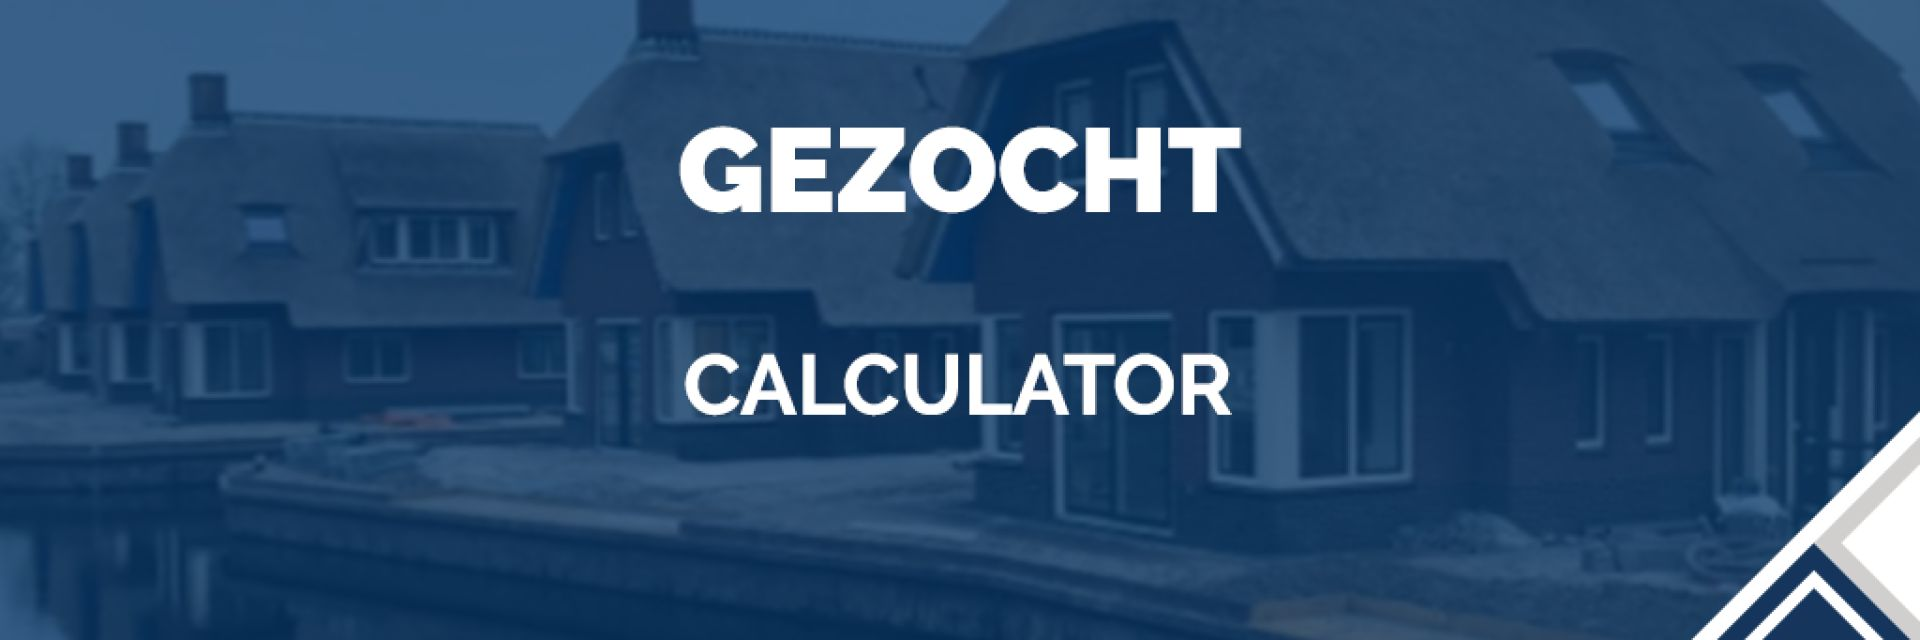 Vacature Calculator